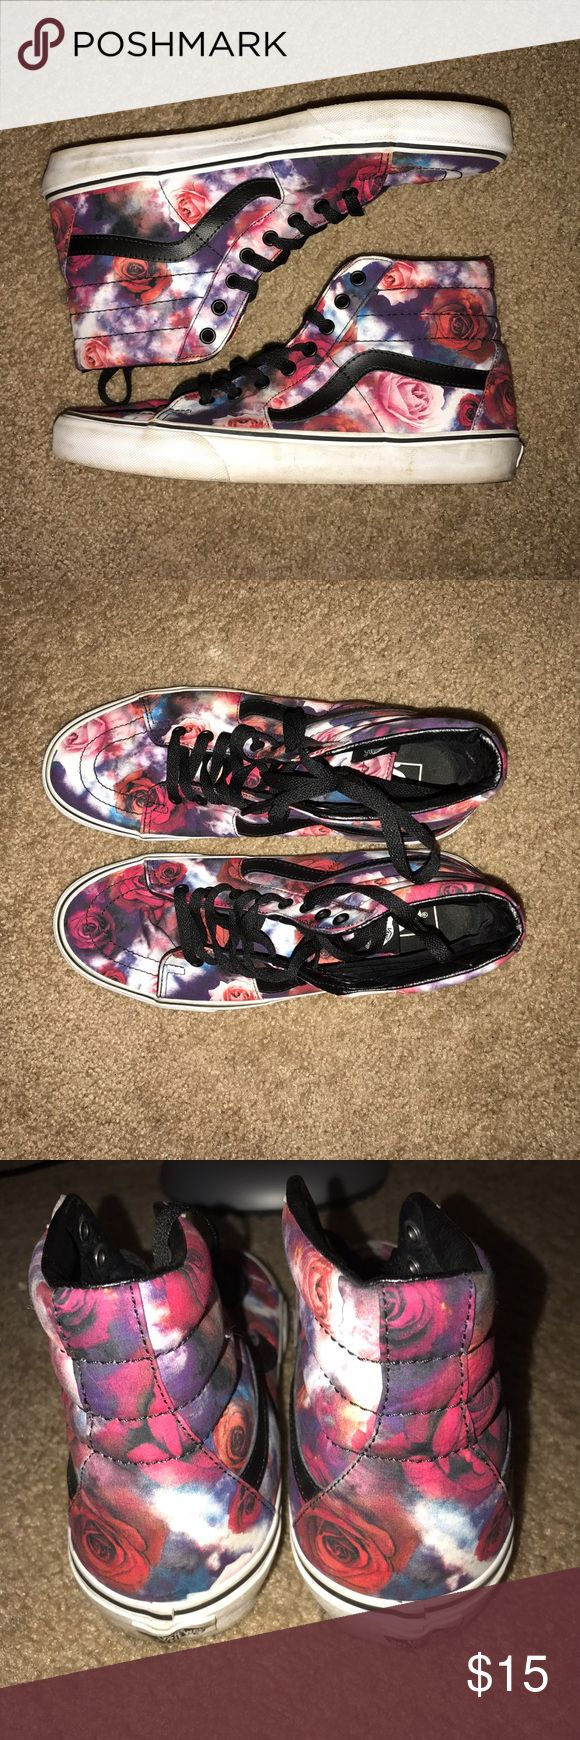 Galaxy Roses Vans Sneakers This pattern is everything! Rock it with jeans or with a cute dress! These are a men's size 10, equivalent to 11-11.5 in women's. Vans Shoes Athletic Shoes